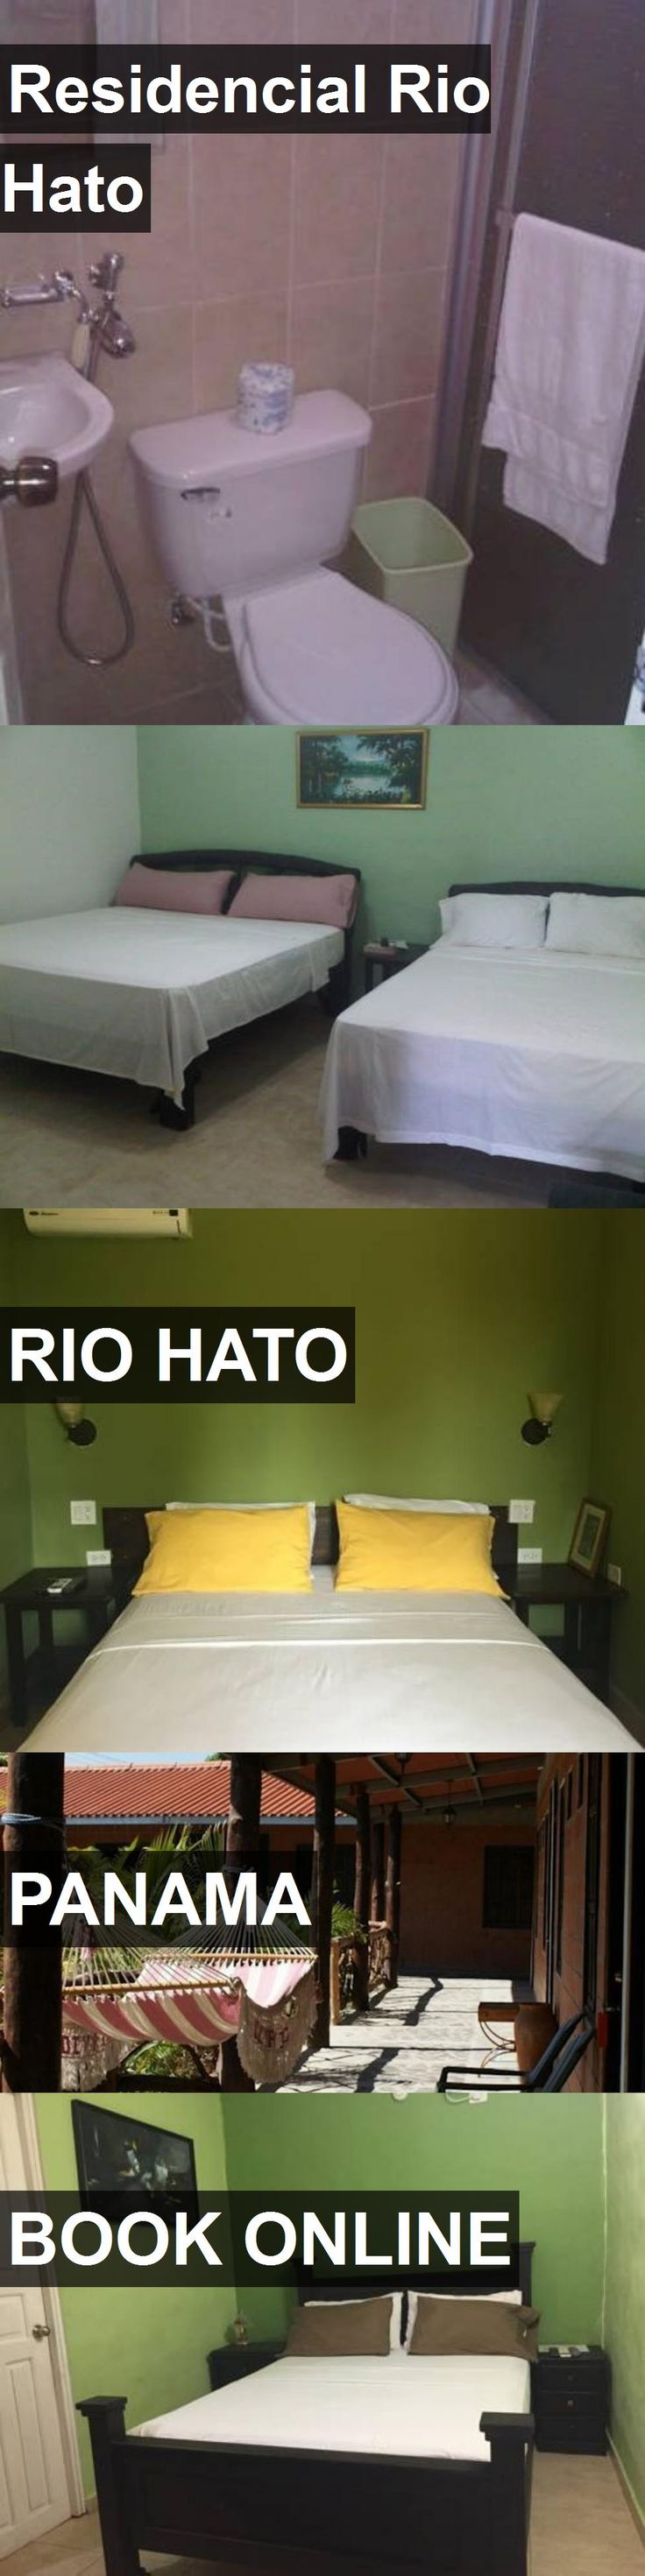 Hotel Residencial Rio Hato in Rio Hato, Panama. For more information, photos, reviews and best prices please follow the link. #Panama #RioHato #travel #vacation #hotel